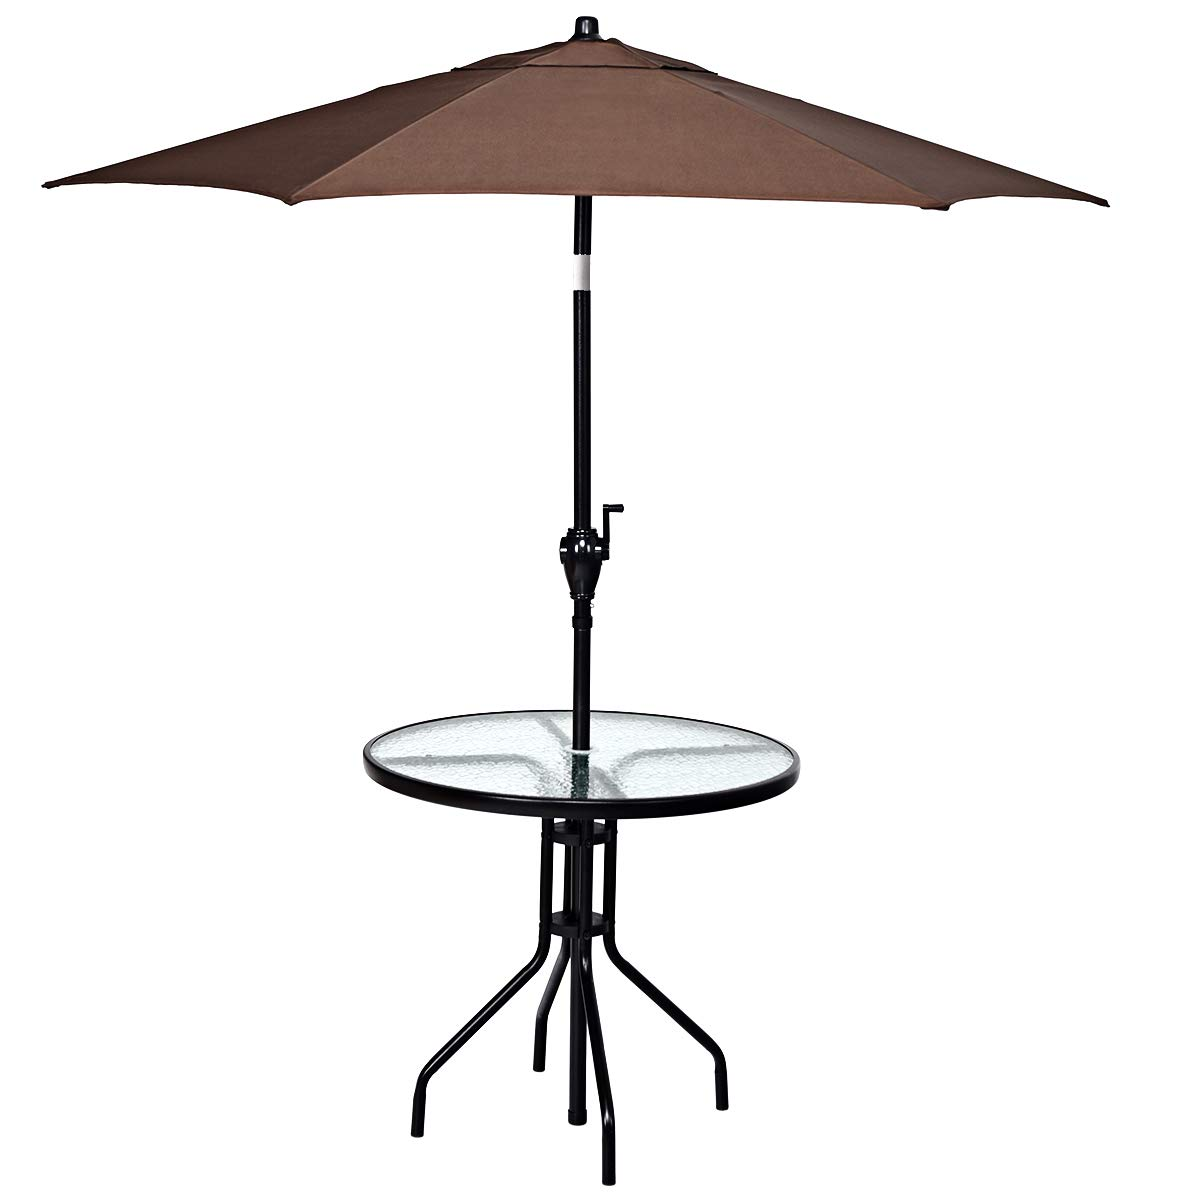 Tangkula 2PC Garden Furniture Set, Patio Garden Set with 32 Round Table and 6.6ft Umbrella Black Round Table Brown Umbrella